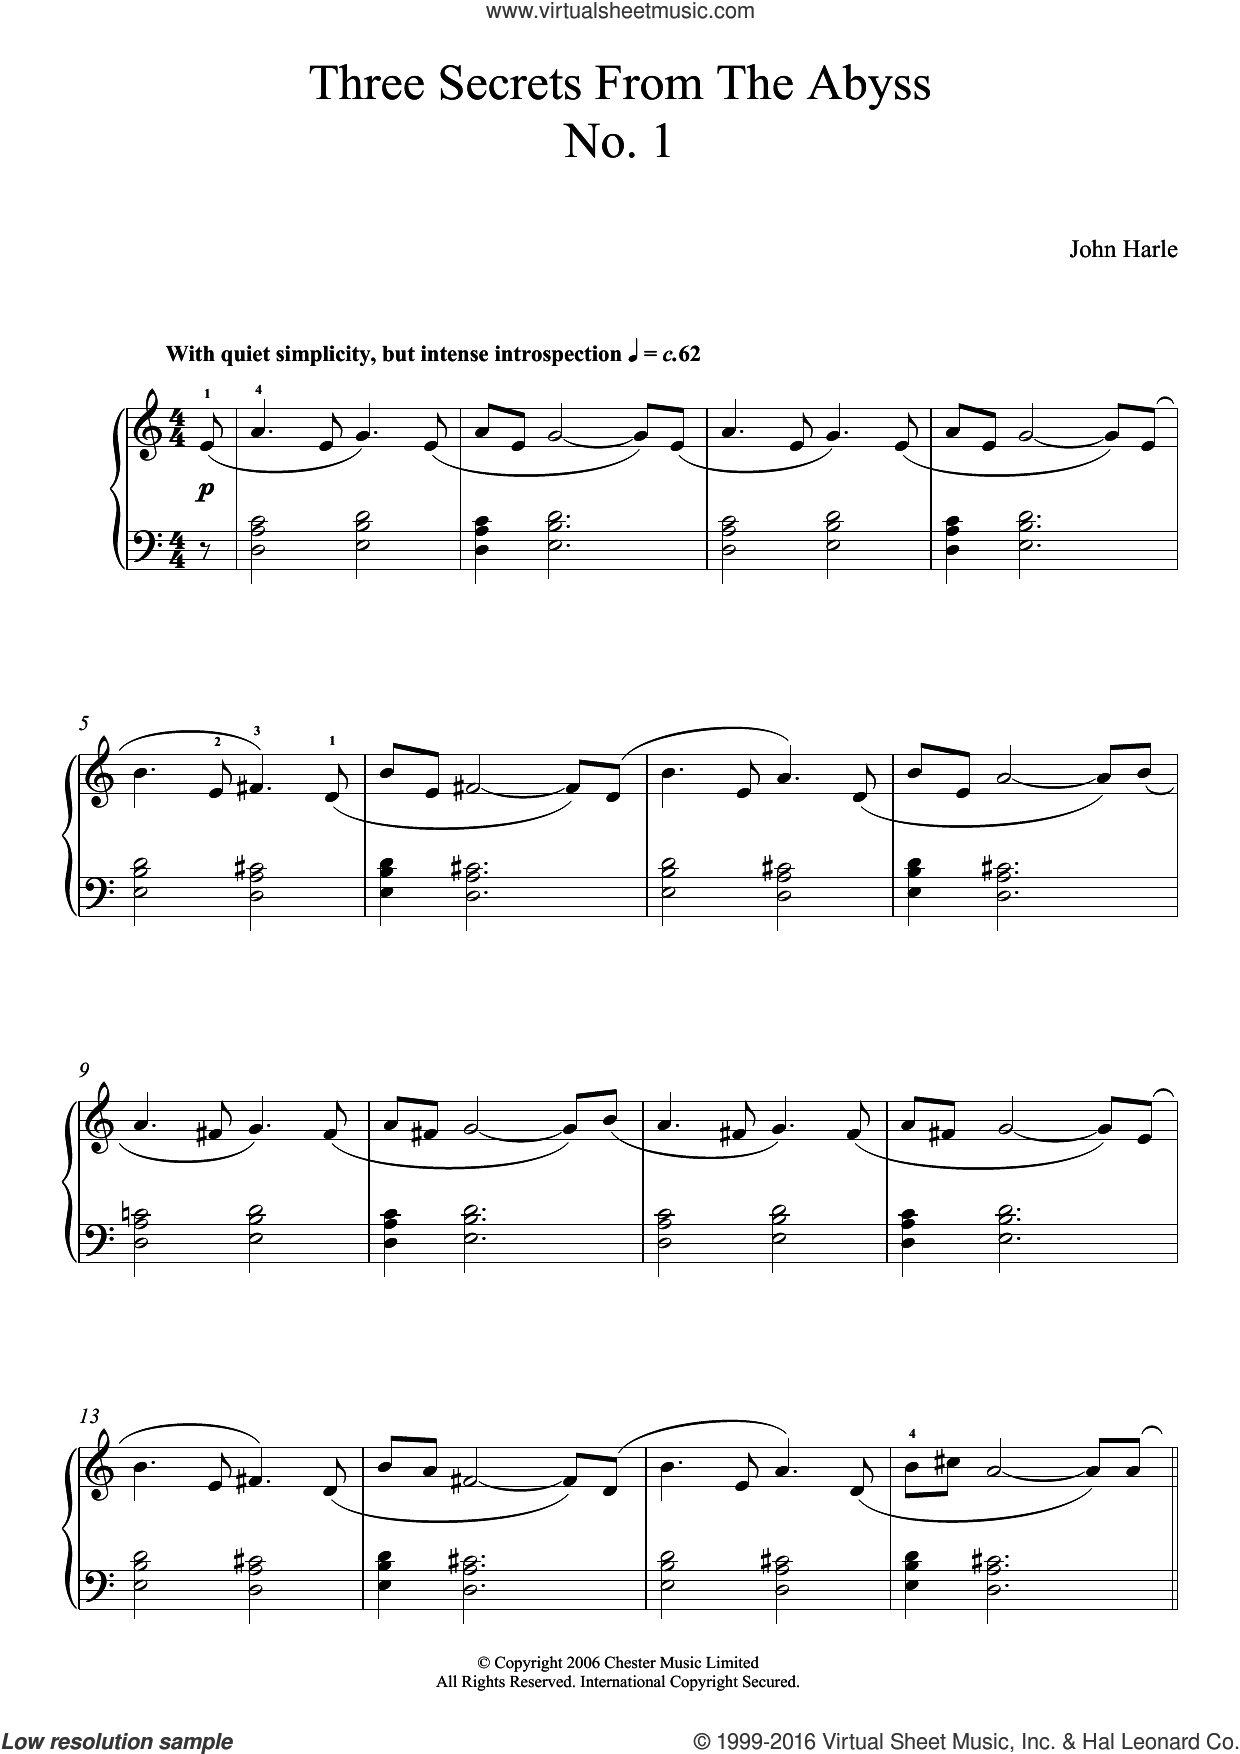 Three Secrets From The Abyss - No. 1 sheet music for piano solo by John Harle, classical score, intermediate skill level